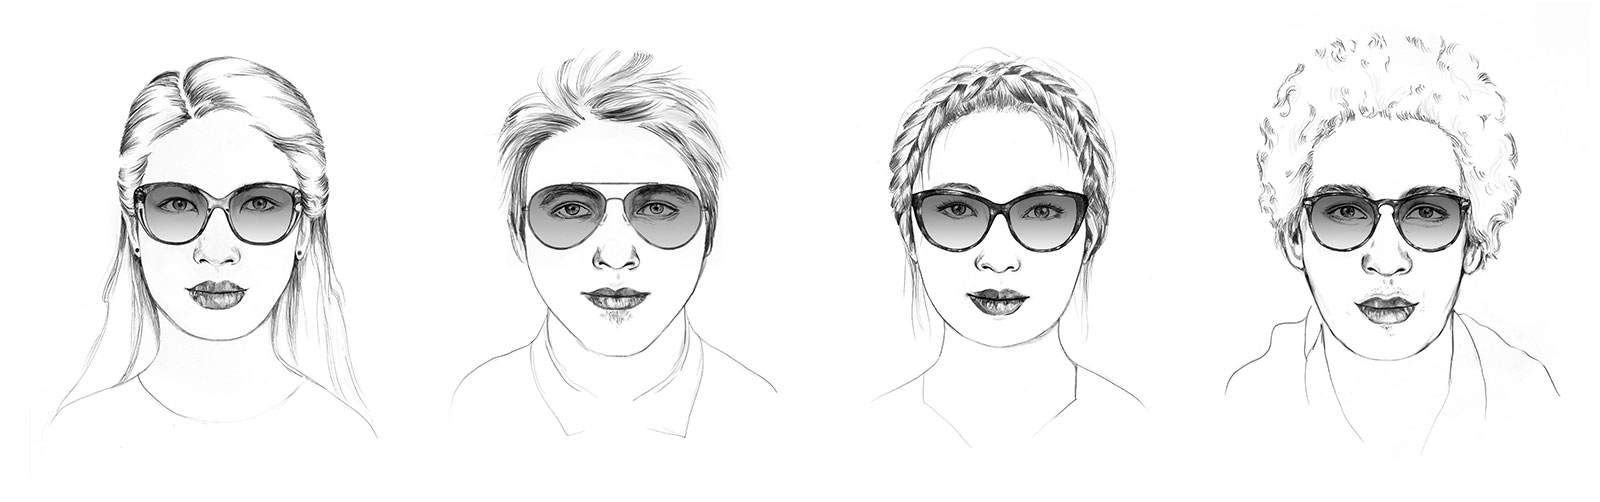 bec_kilpatrick_illustration_sunglasses_soleurs2